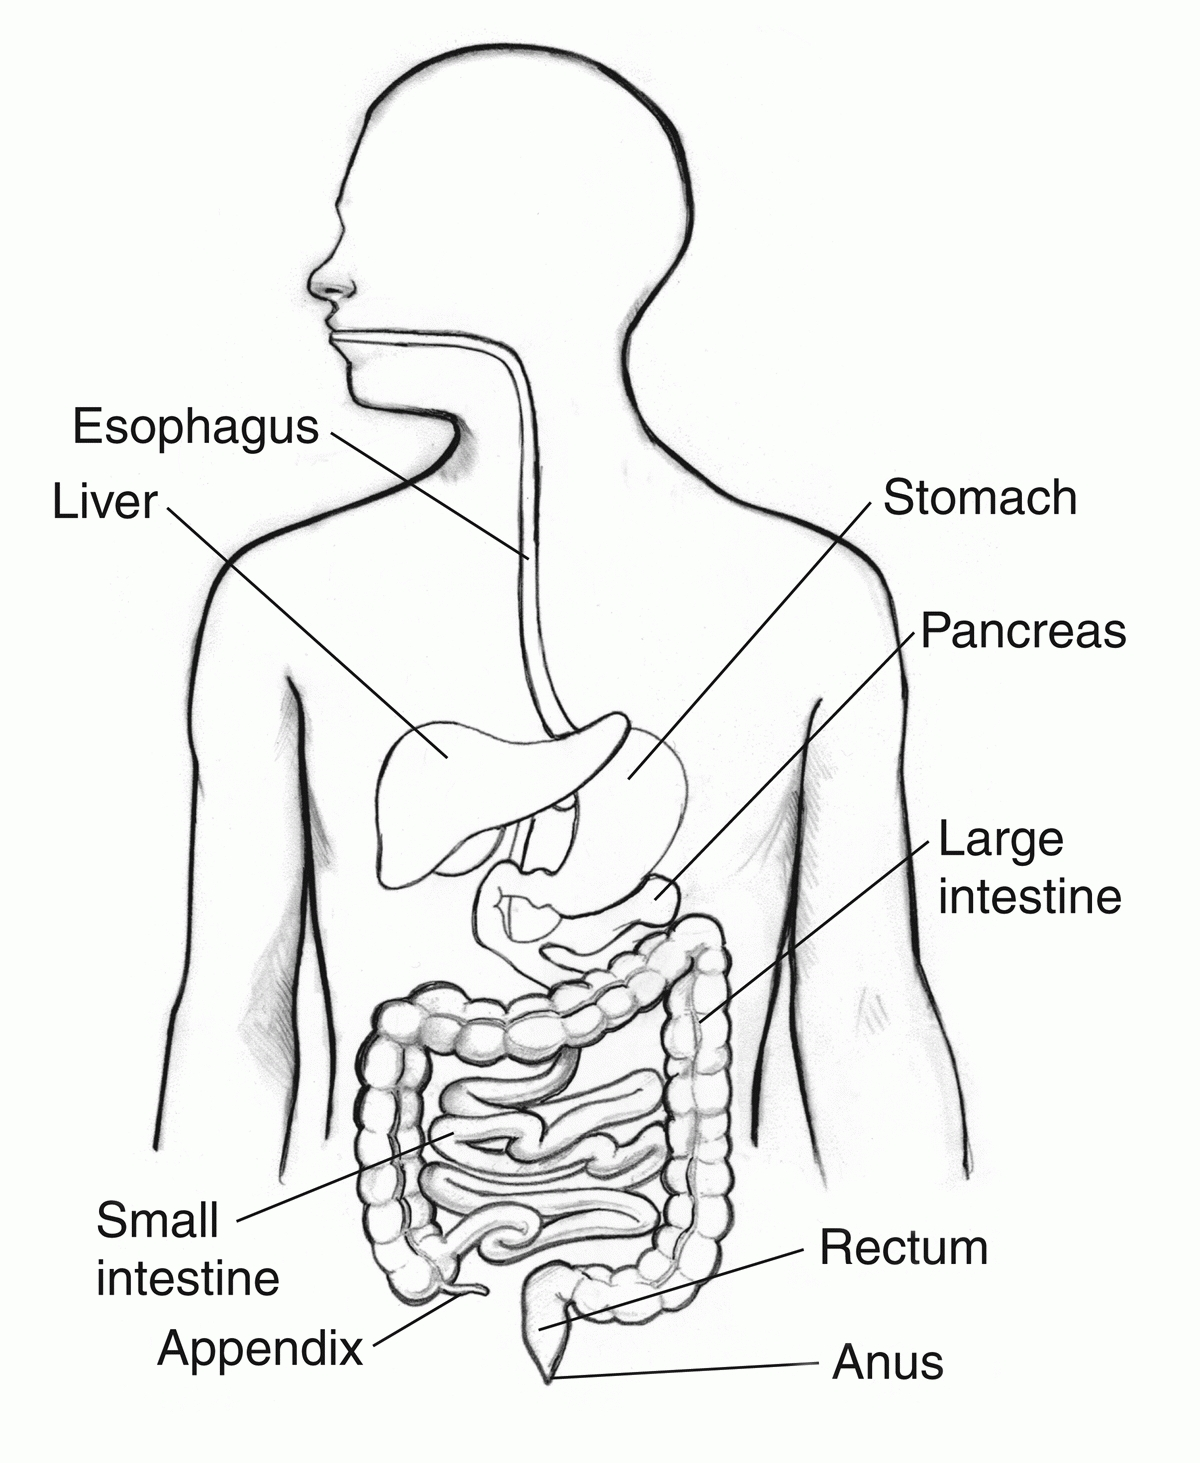 digestive system coloring page - digestive system coloring page